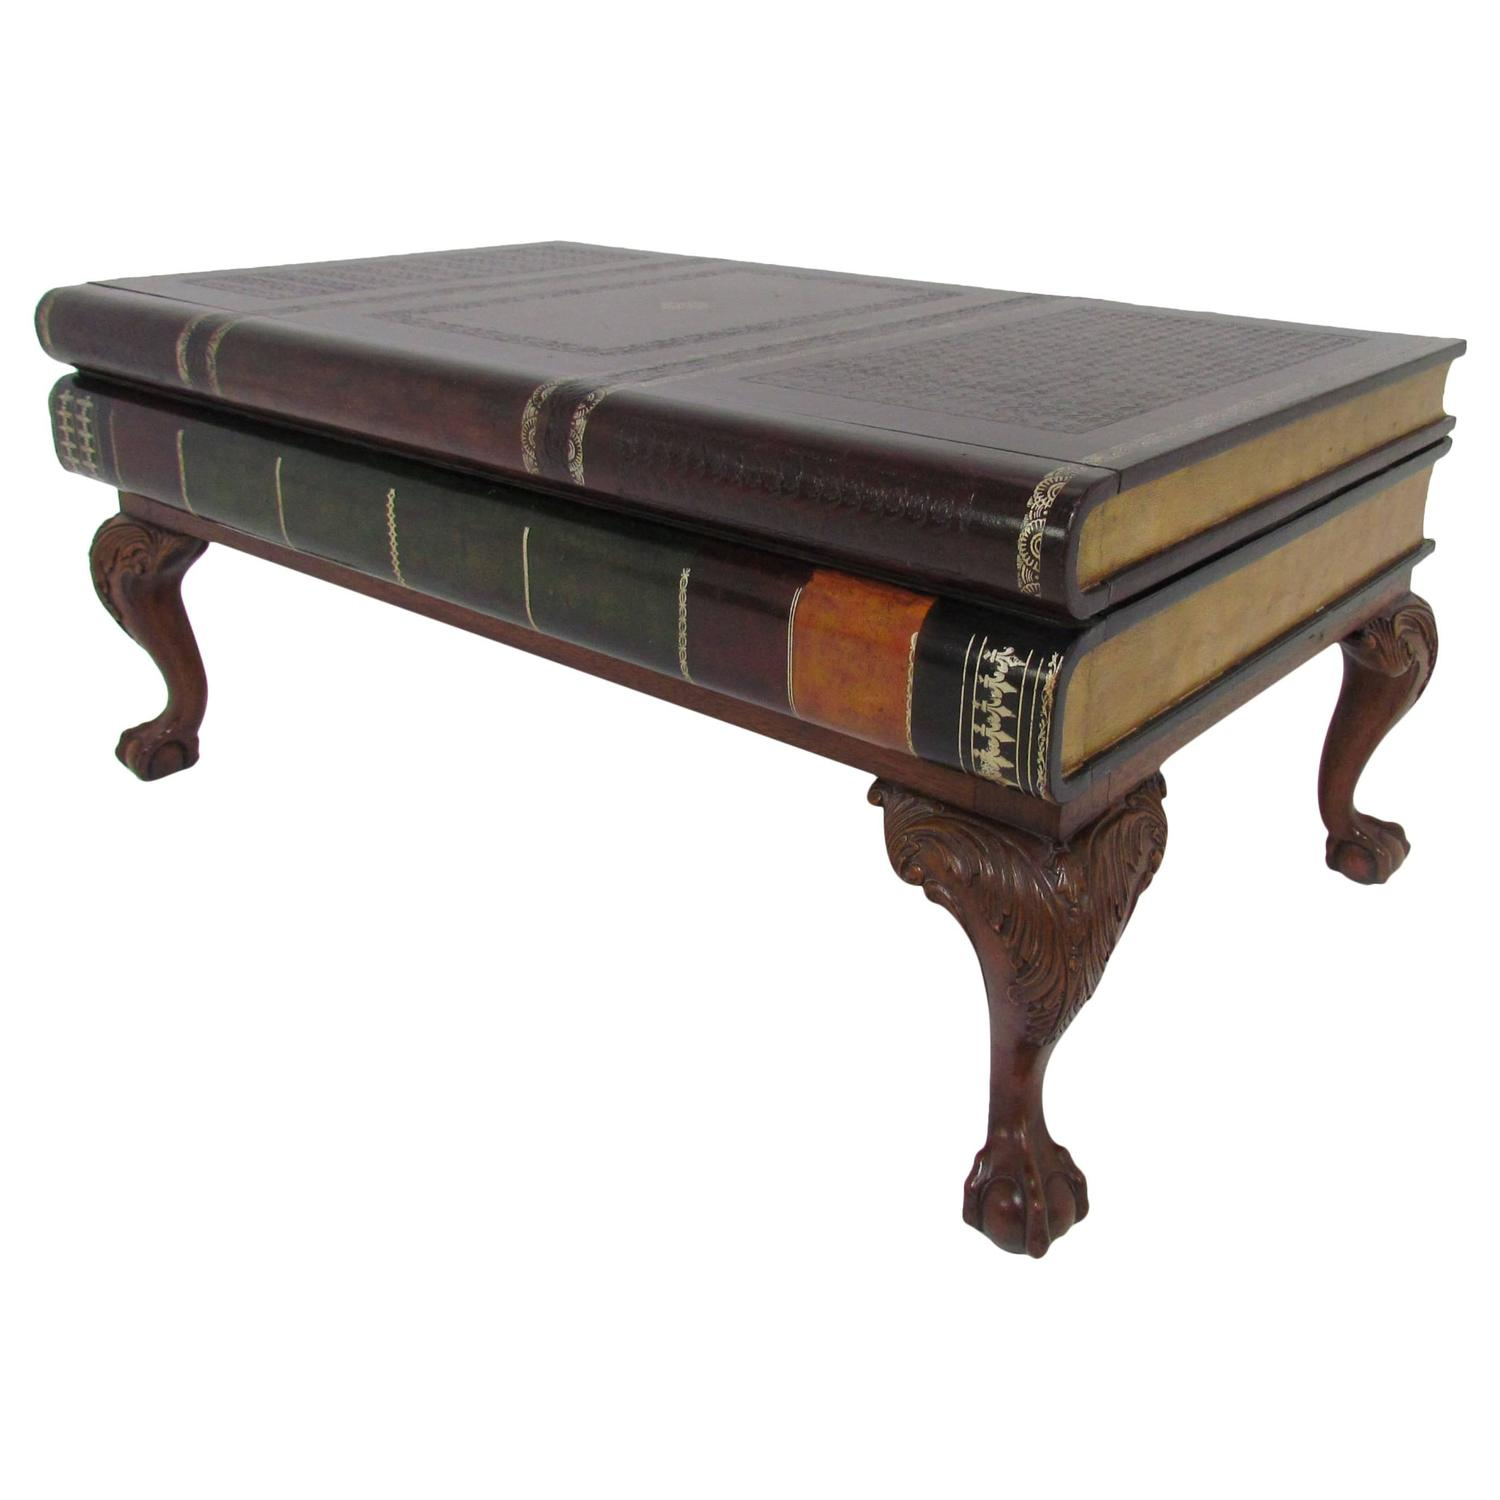 Maitland Smith Stacked Leather Book Form Coffee Table at 1stdibs